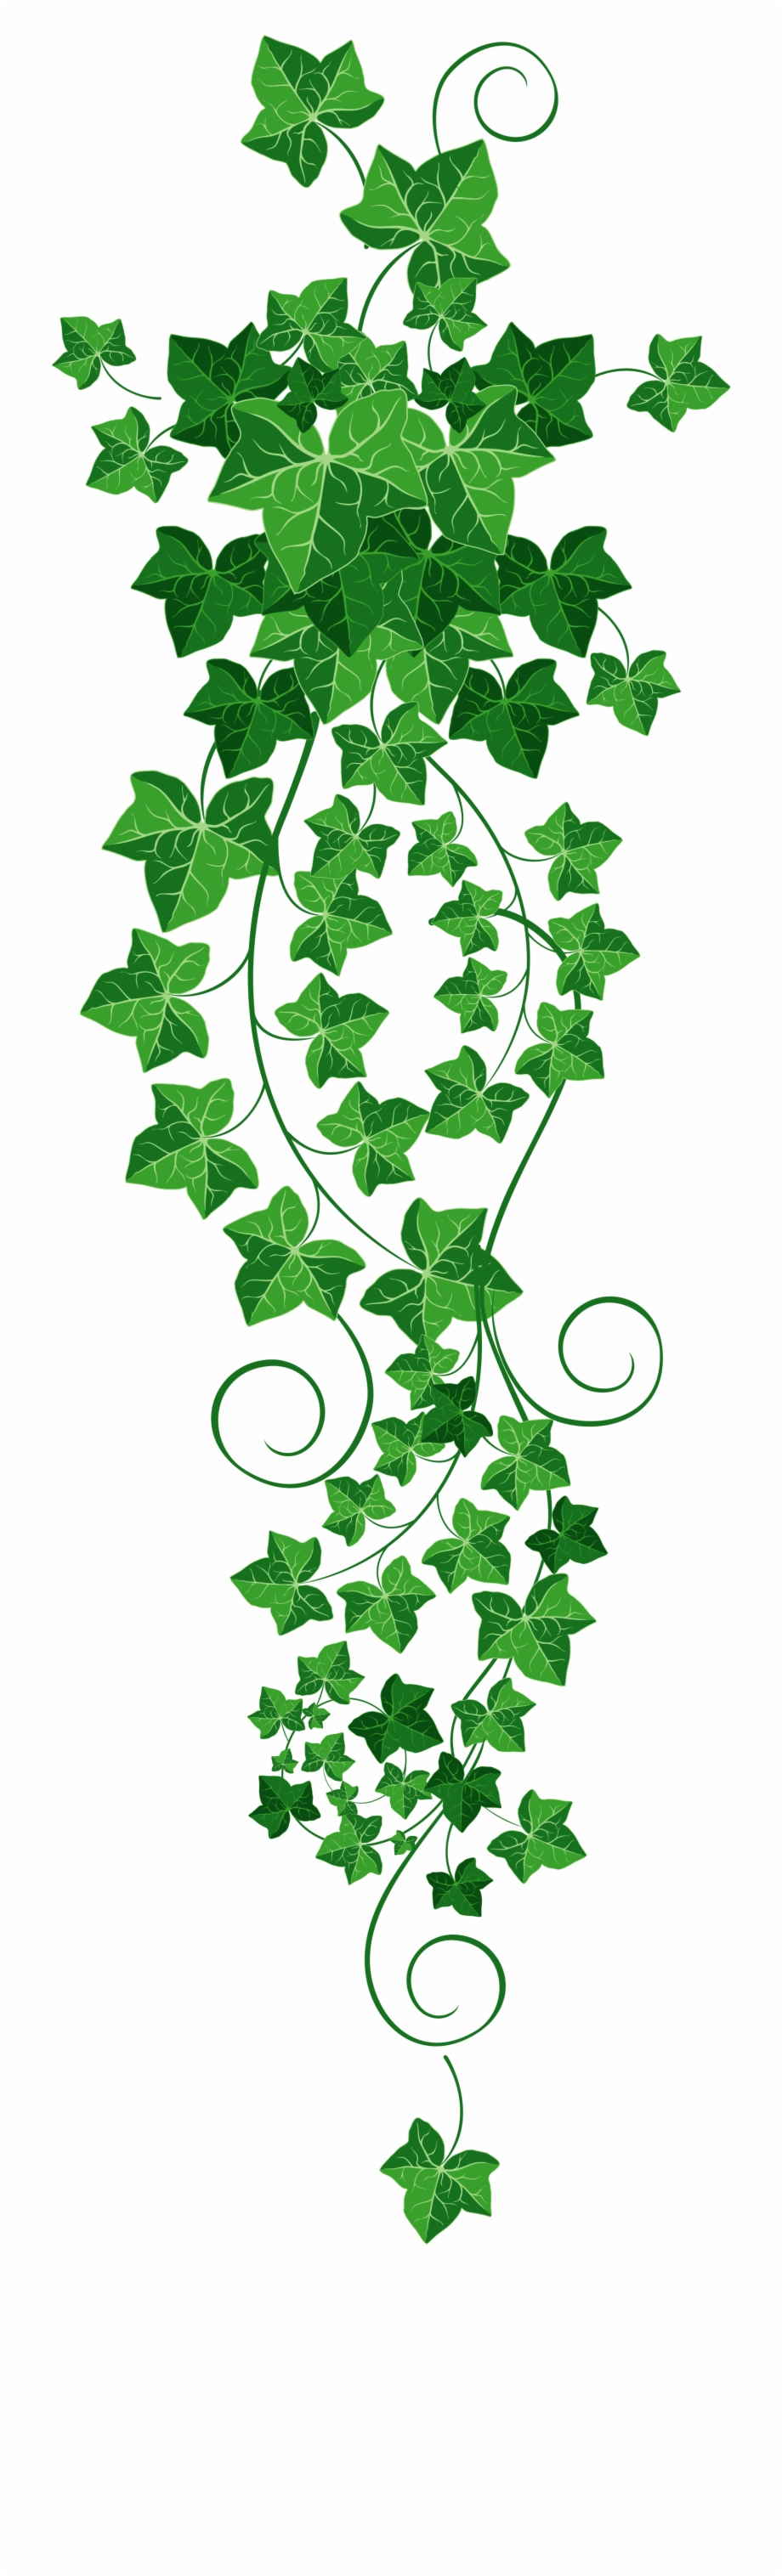 Creepers clipart image library library Free Ivy Vine Png, Download Free Clip Art, Free Clip Art on ... image library library